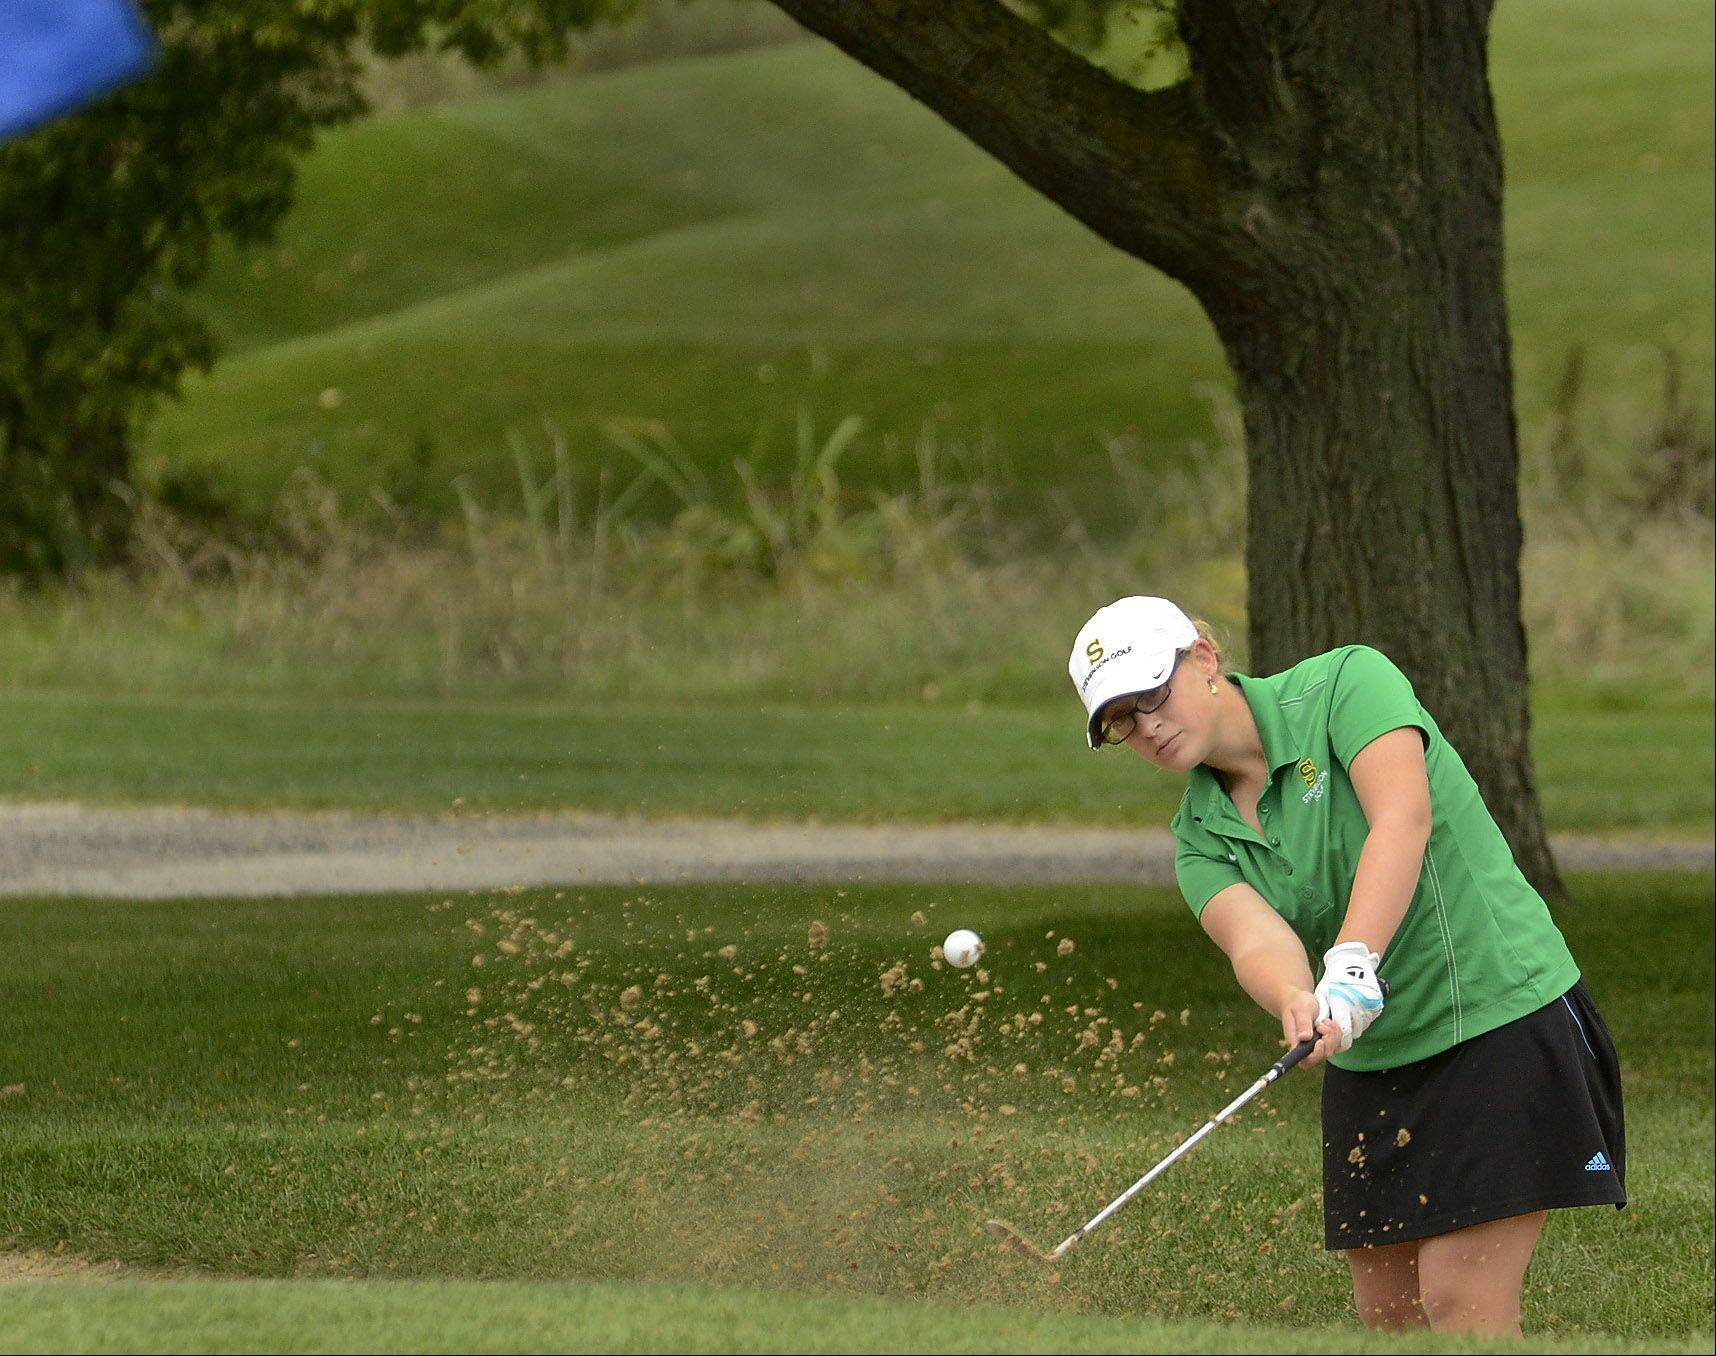 Bob Chwedyk/bchwedyk@dailyherald.comAlexia Fidman of Stevenson hits out of the sand by the ninth green during the North Suburban Conference girls golf meet at Deerpath Golf Course in Lake Forest.